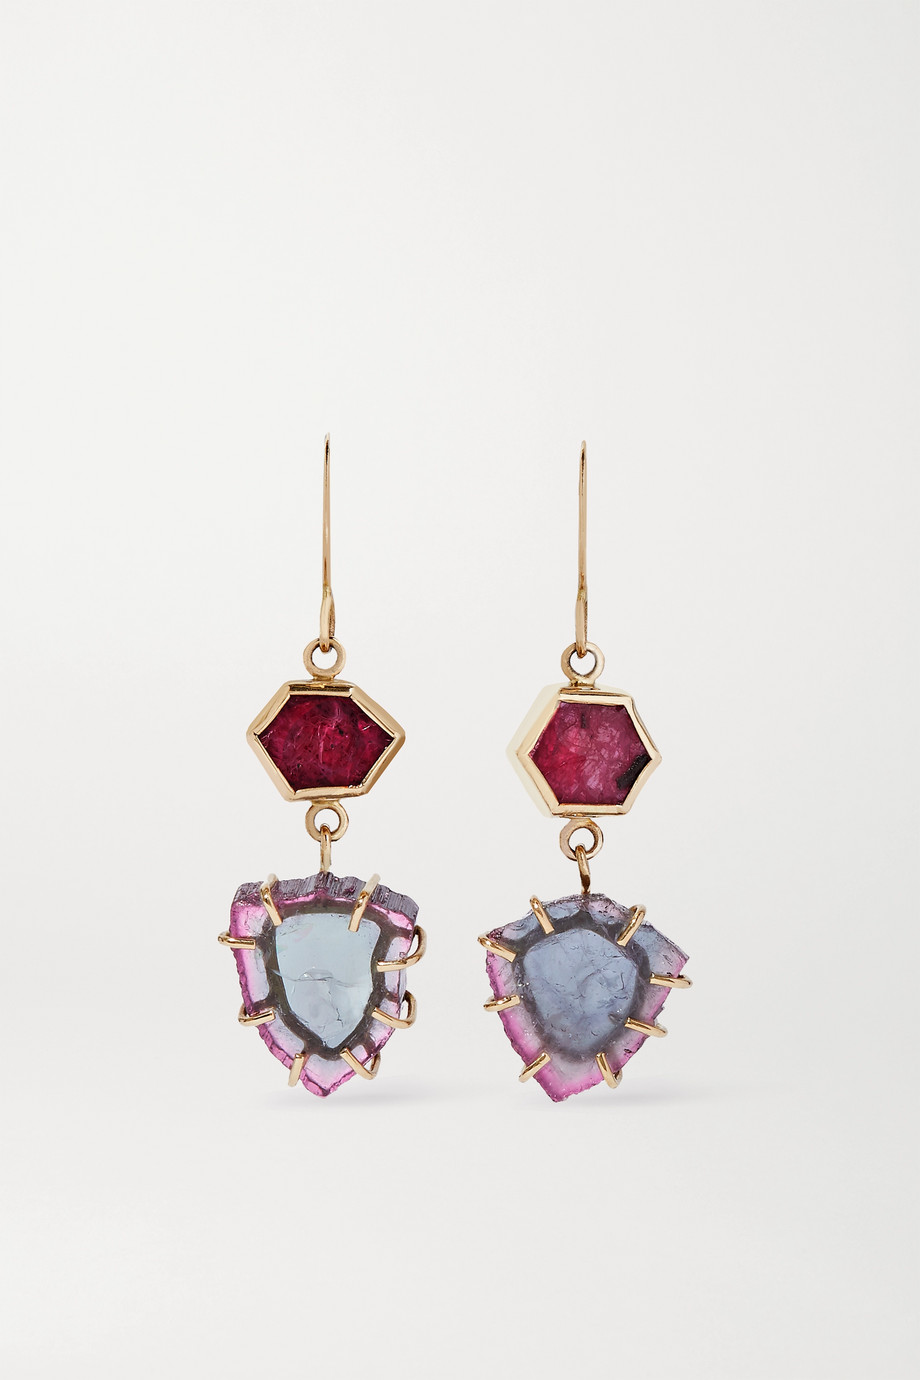 Melissa Joy Manning 14-karat gold, tourmaline and ruby earrings